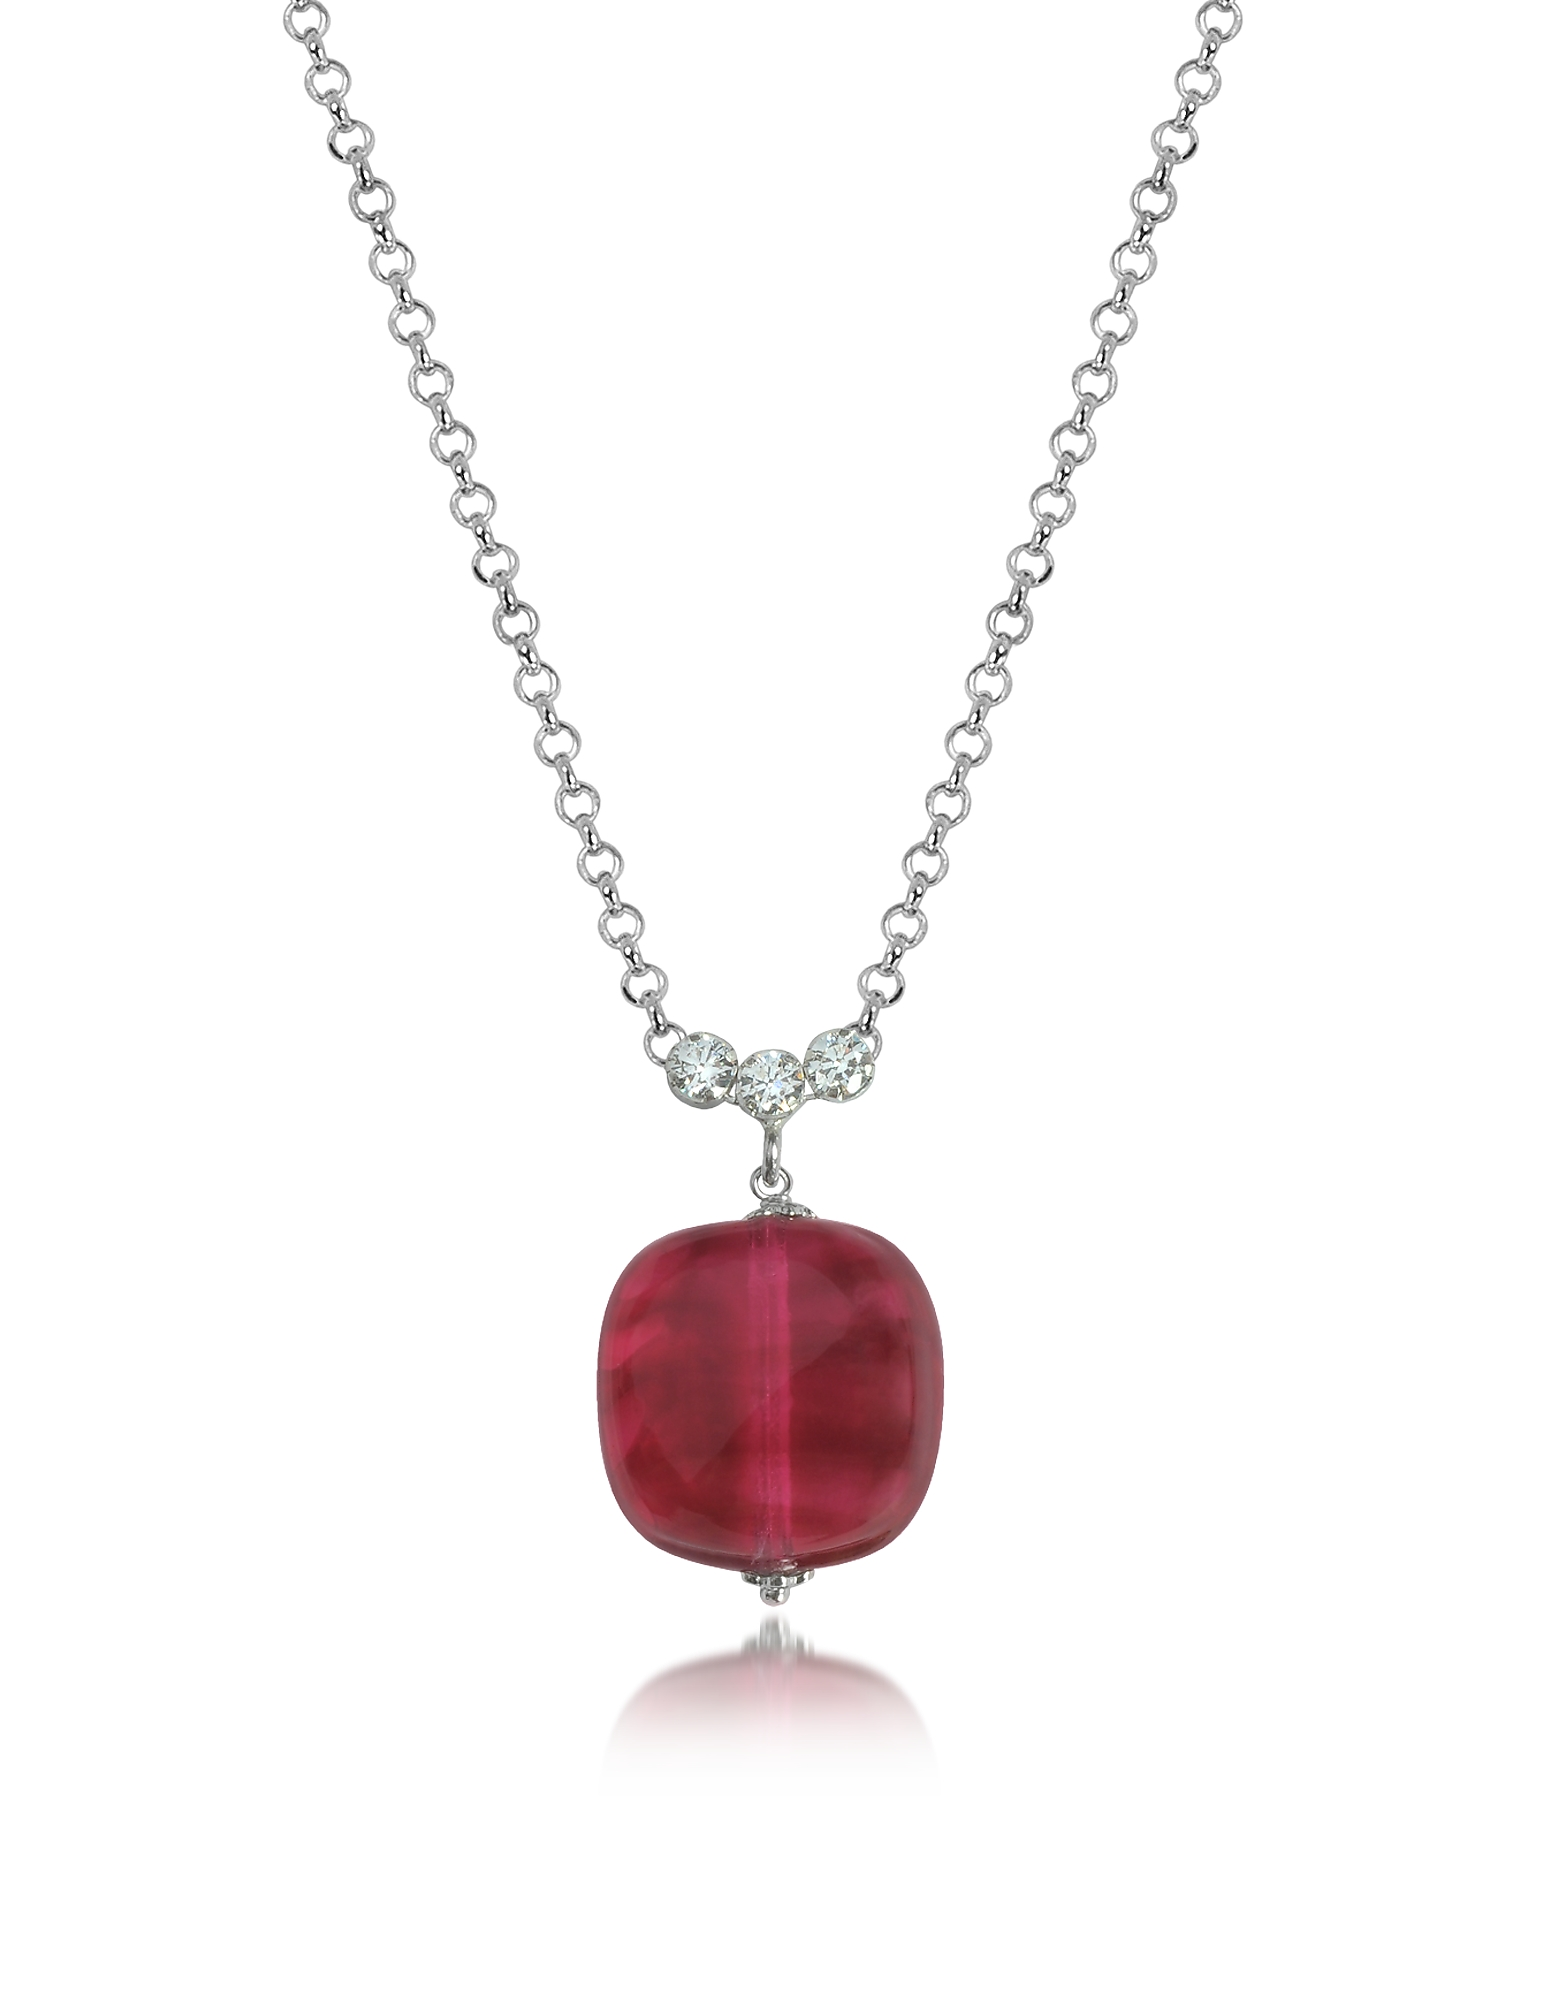 Antica Murrina Necklaces, Florinda Ruby Murano Glass Sterling Silver Necklace